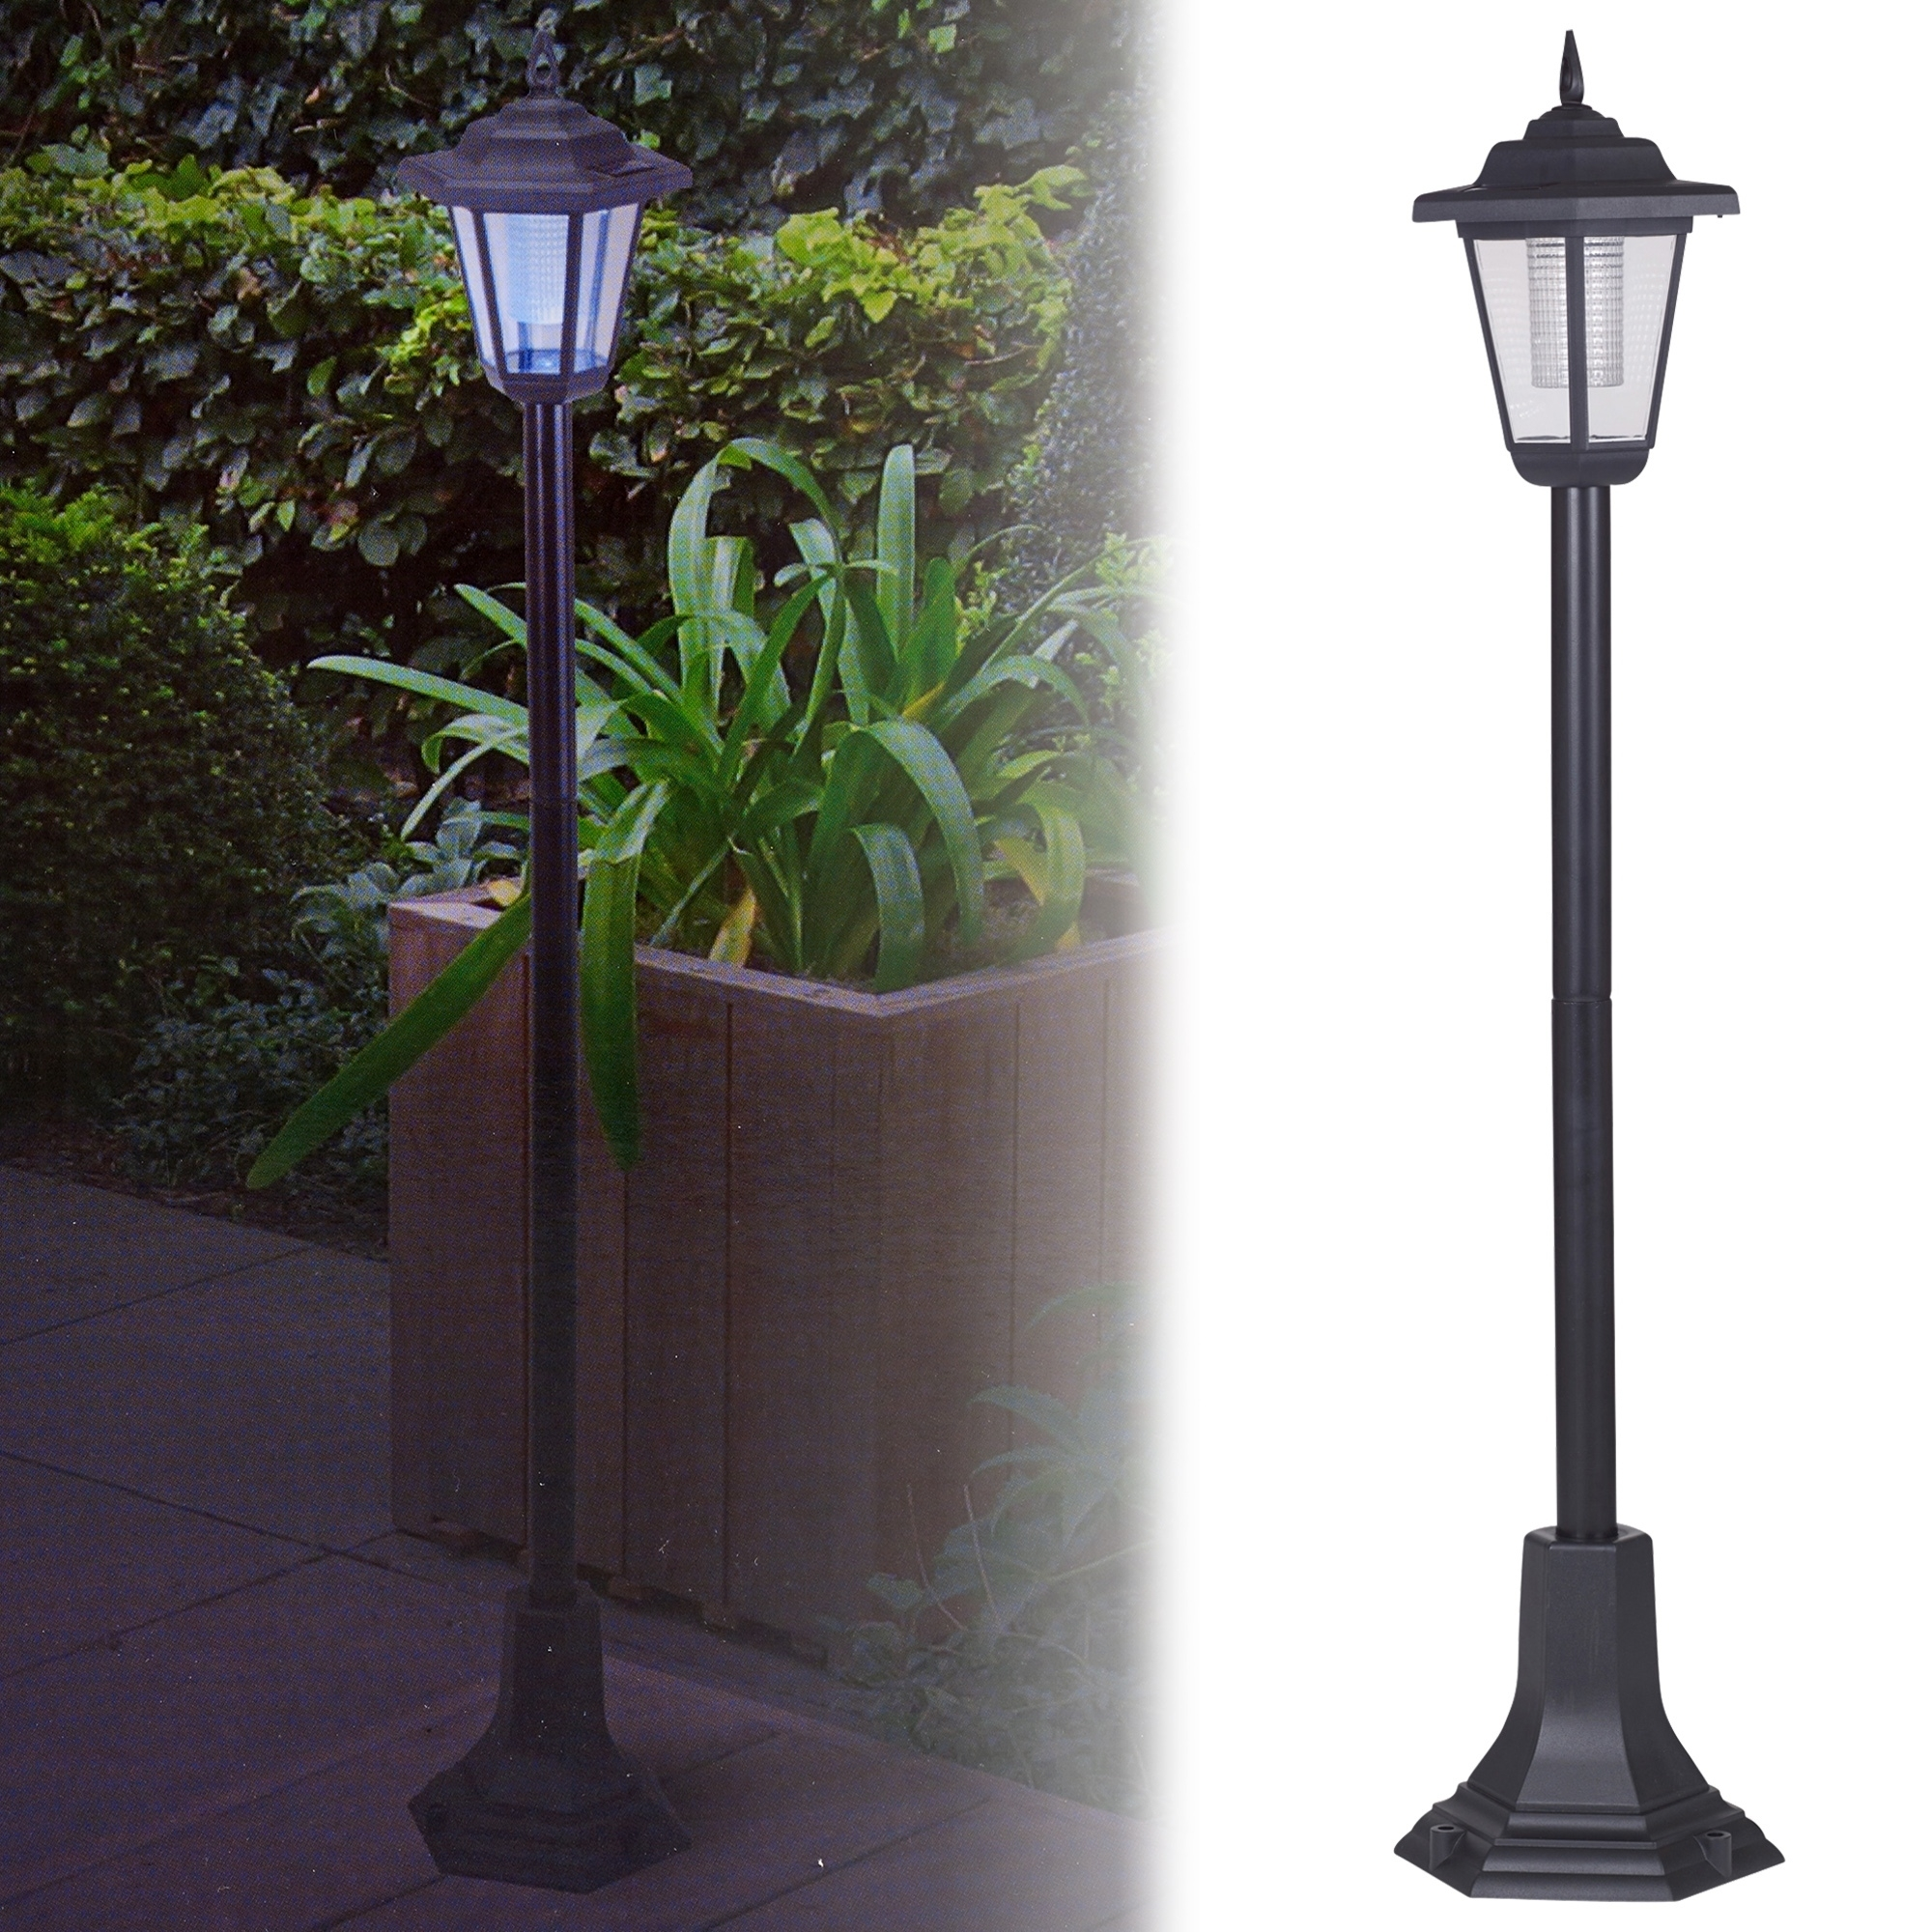 Solar Powered Garden Lights Lantern Lamp Black Led Pathway Driveway intended for Outdoor Driveway Lanterns (Image 18 of 20)